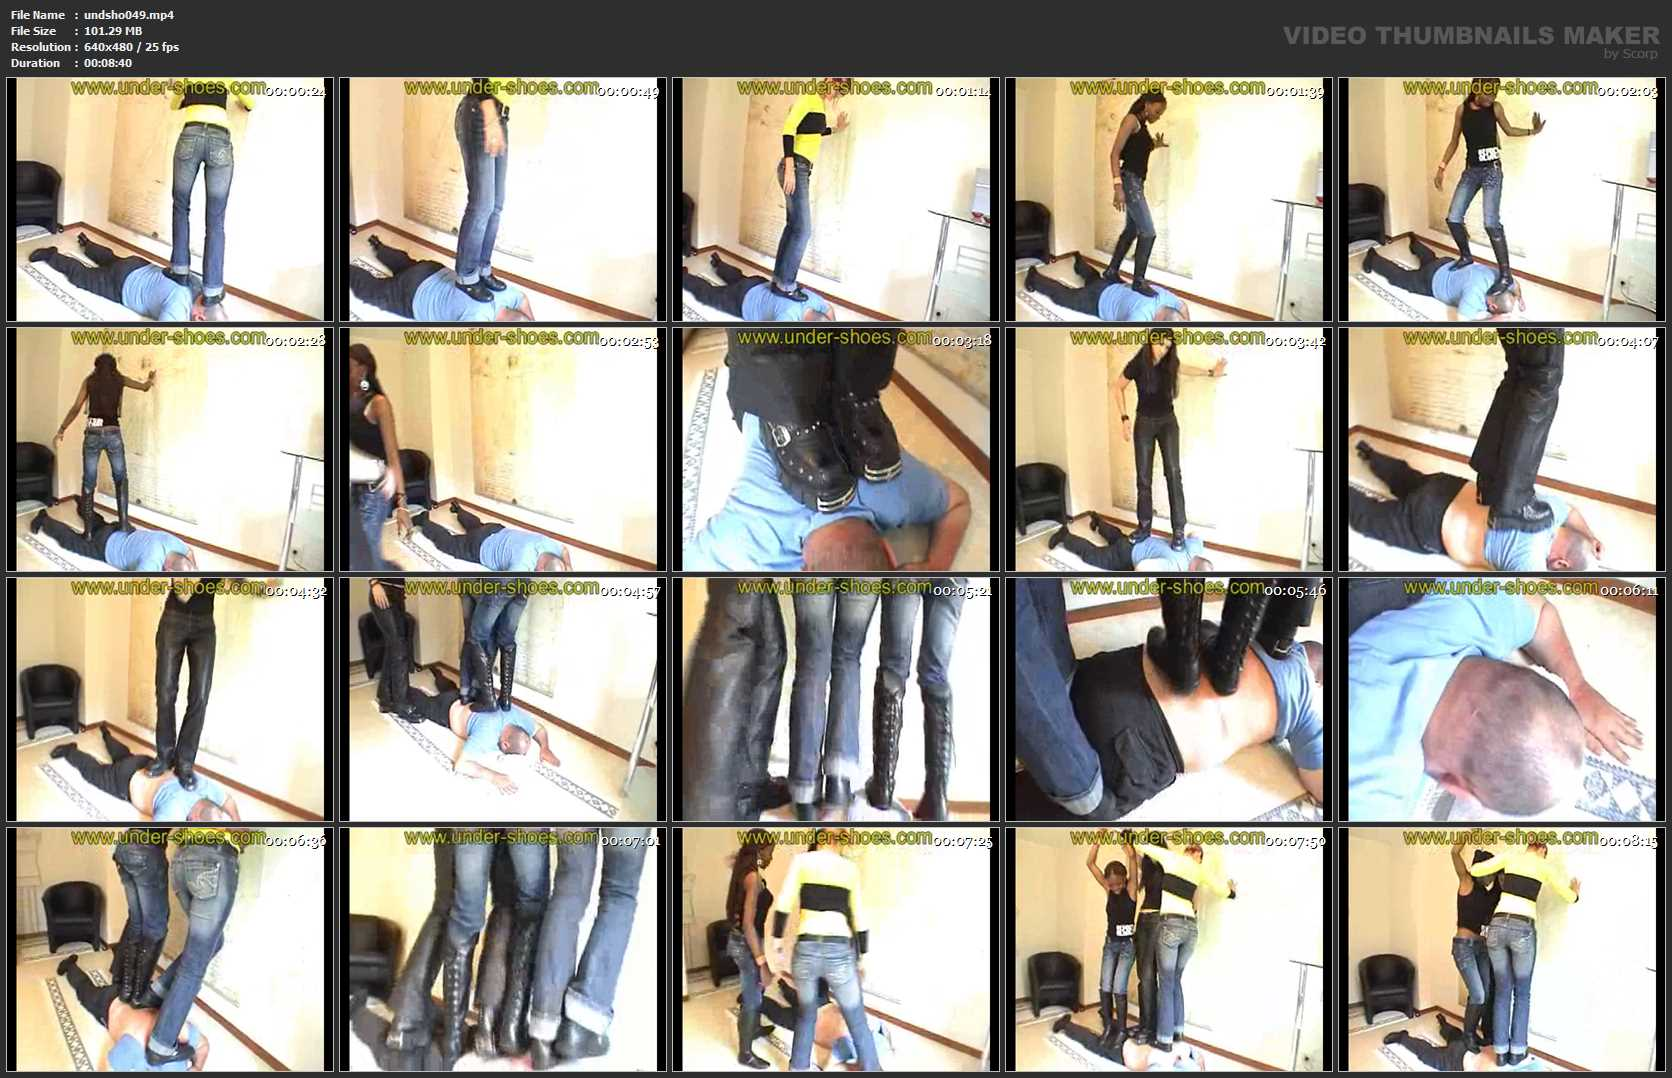 3 Girls Trample - UNDER-SHOES - SD/480p/MP4